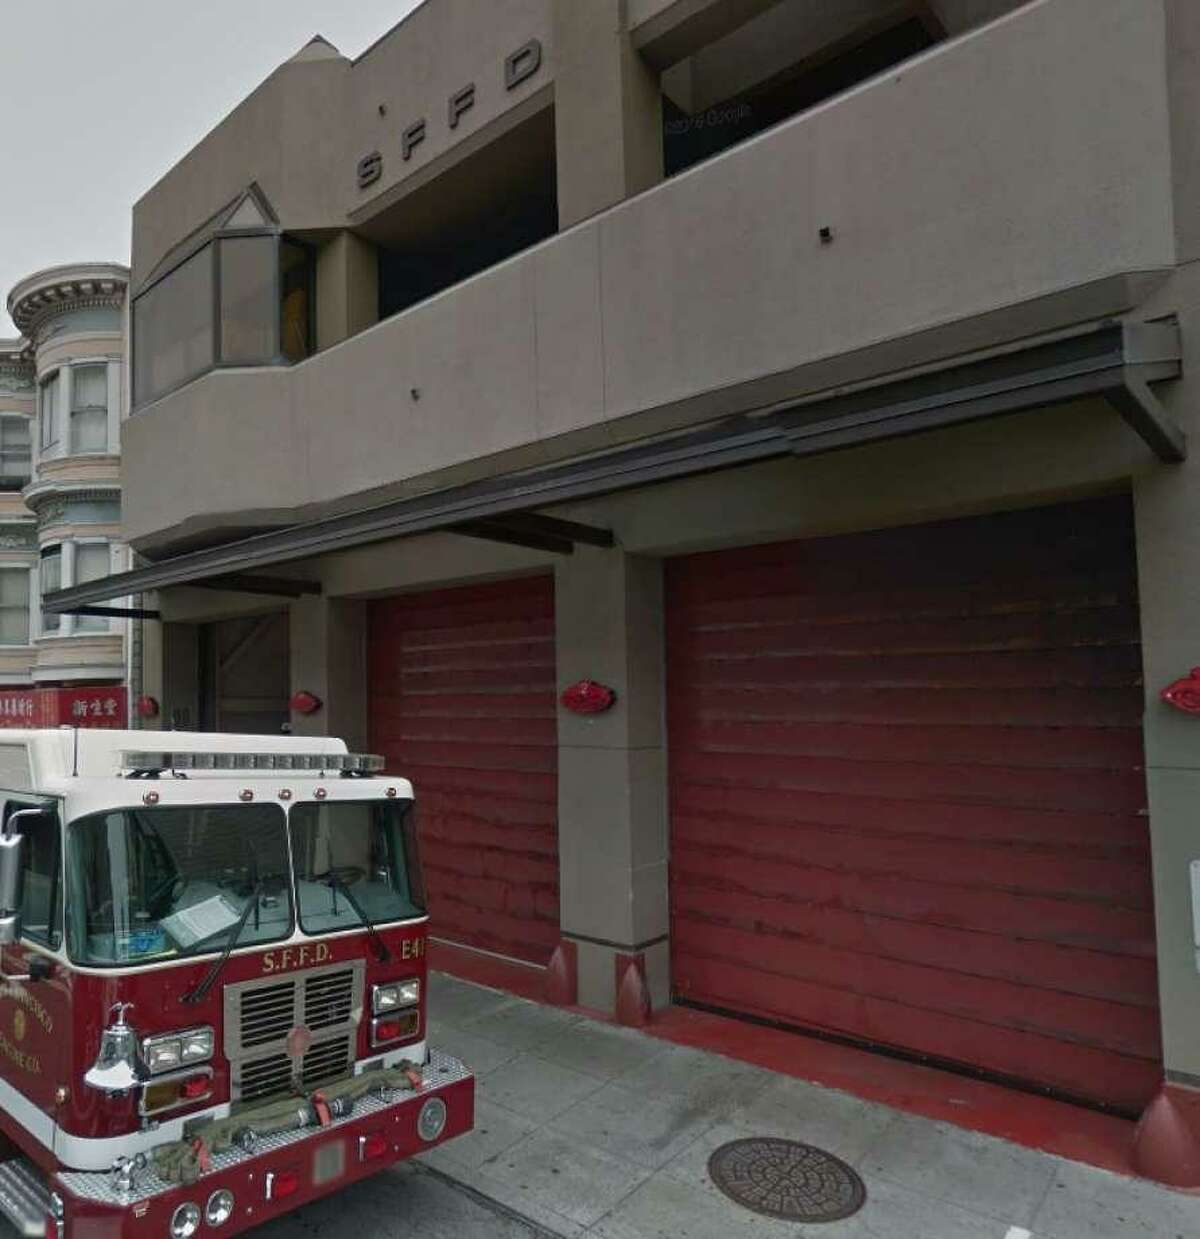 A view outside San Francisco Fire Department's Station 2 in Chinatown, where male firefighters were accused of harassing a female co-worker.